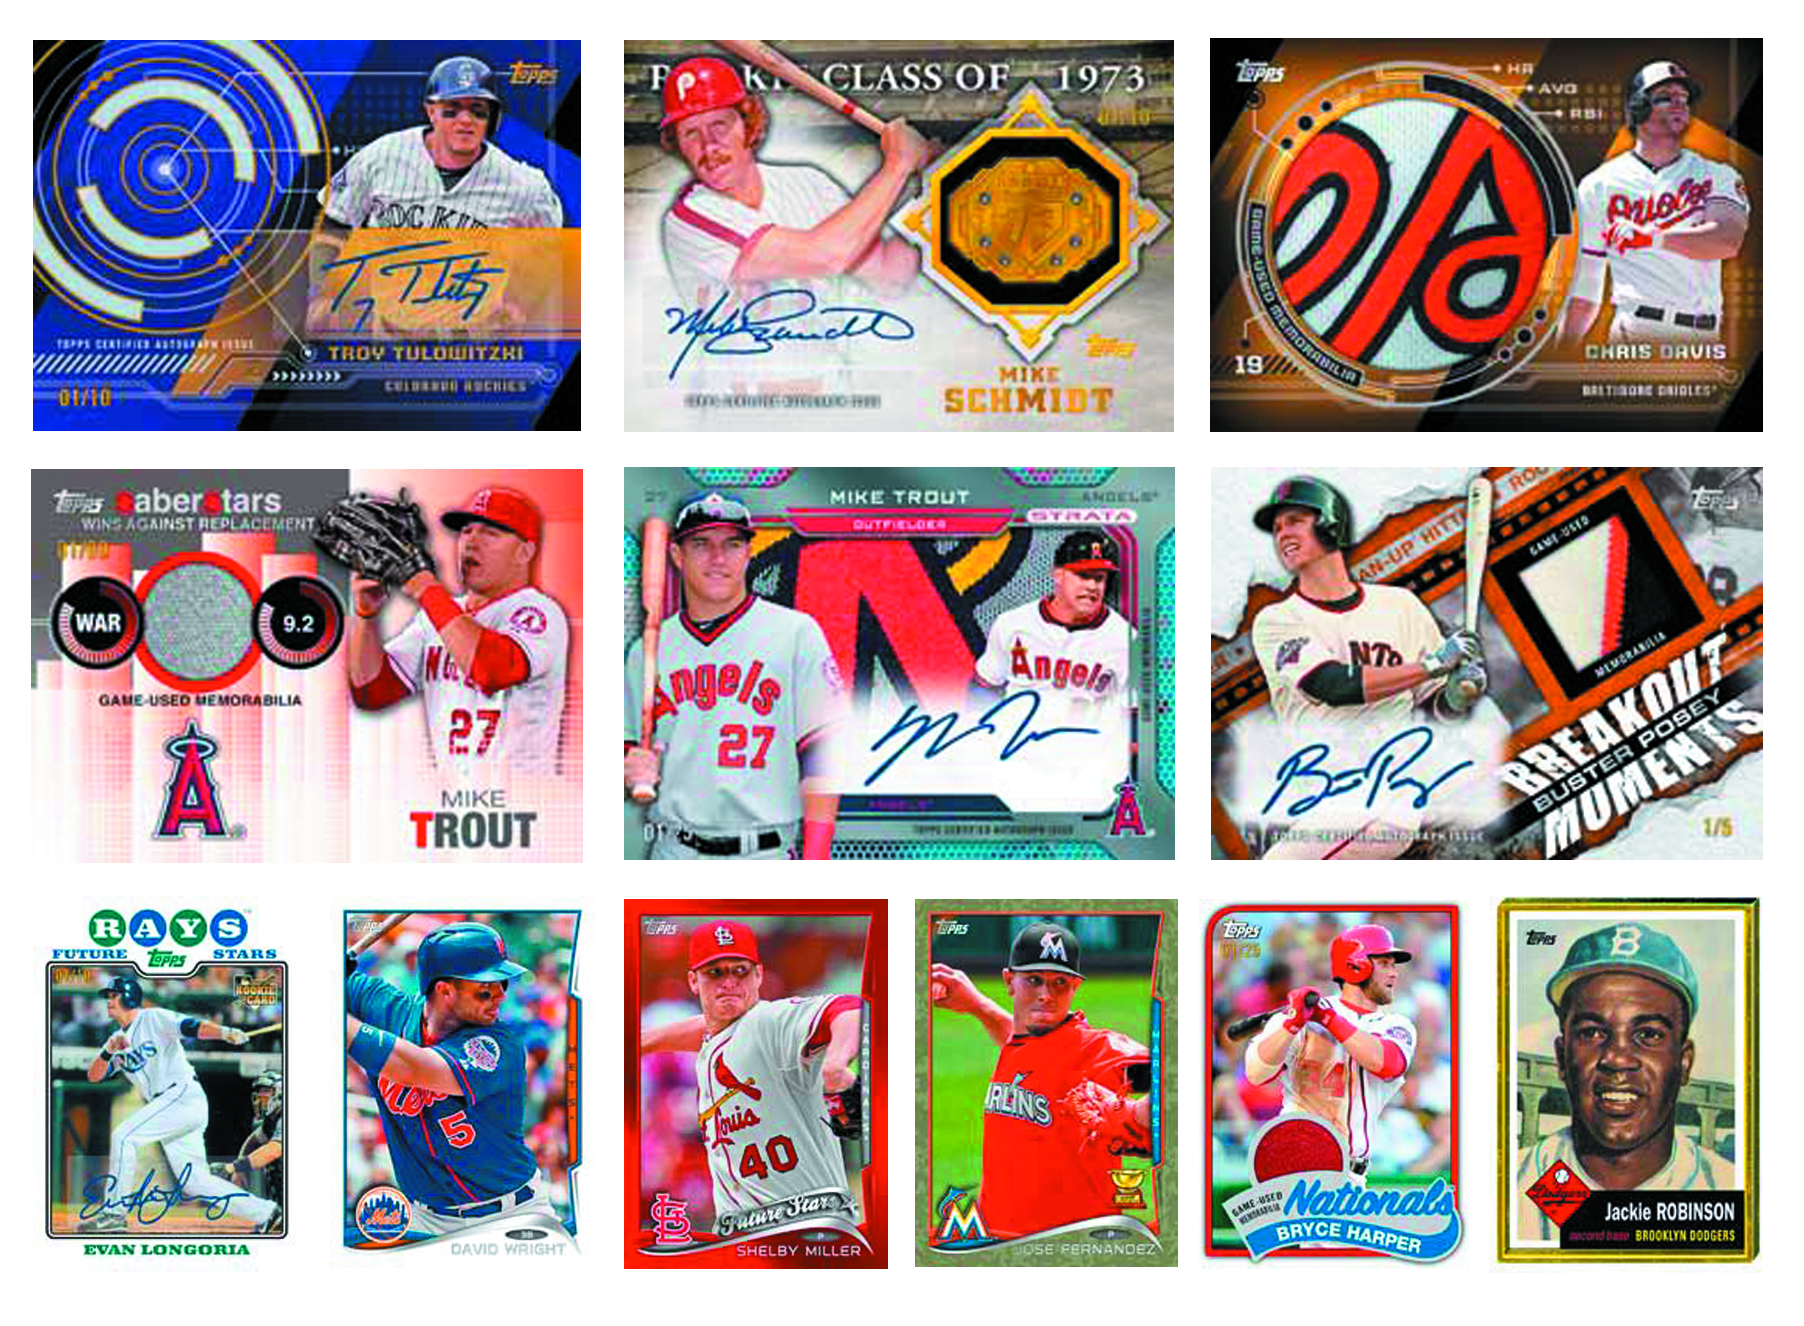 TOPPS 2014 BASEBALL SERIES 2 T/C JUMBO BOX